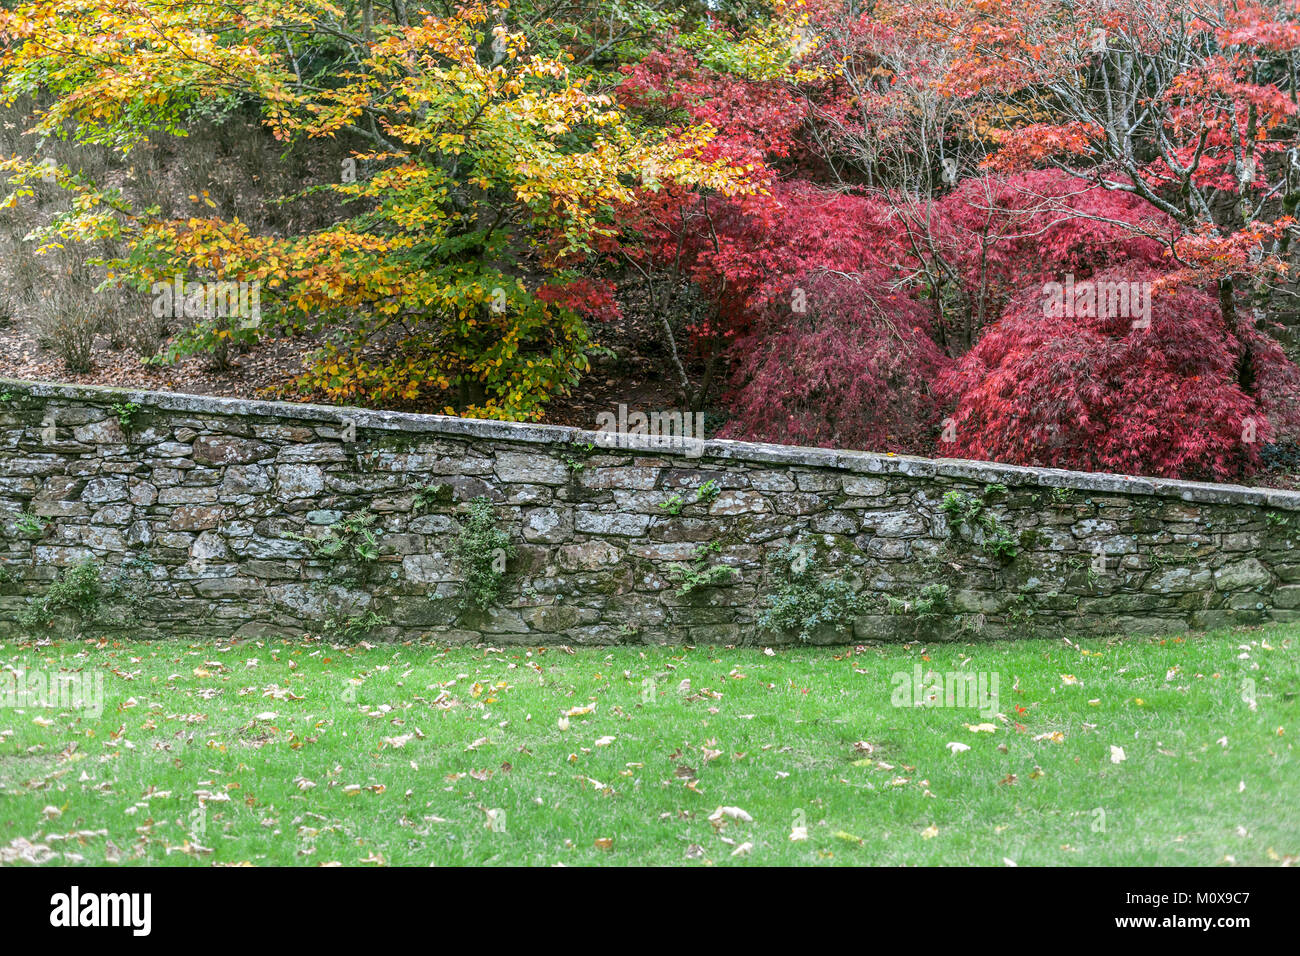 Autumn colored trees and plants, garden park view Stock Photo ...